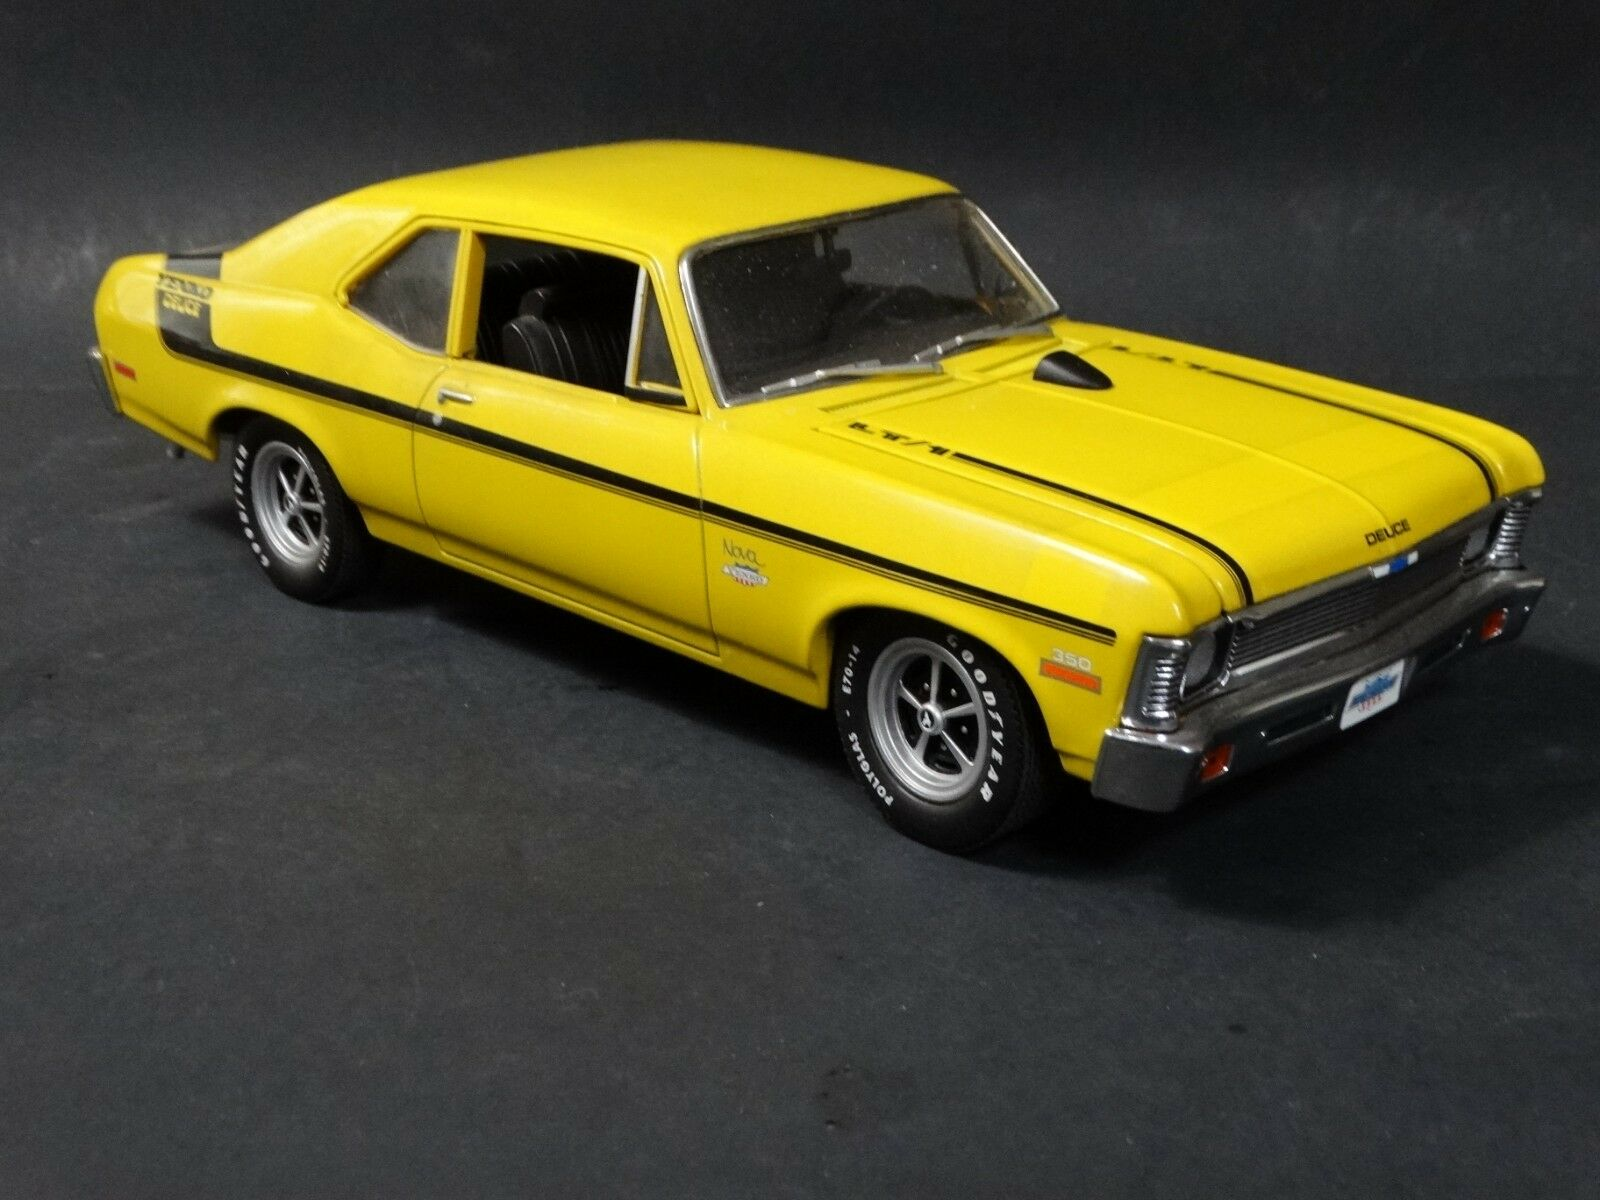 GMP 1968 Chevy Nova Yenko Deuce LT/1 Yellow 1:18 Scale Diecast Model Car Limited